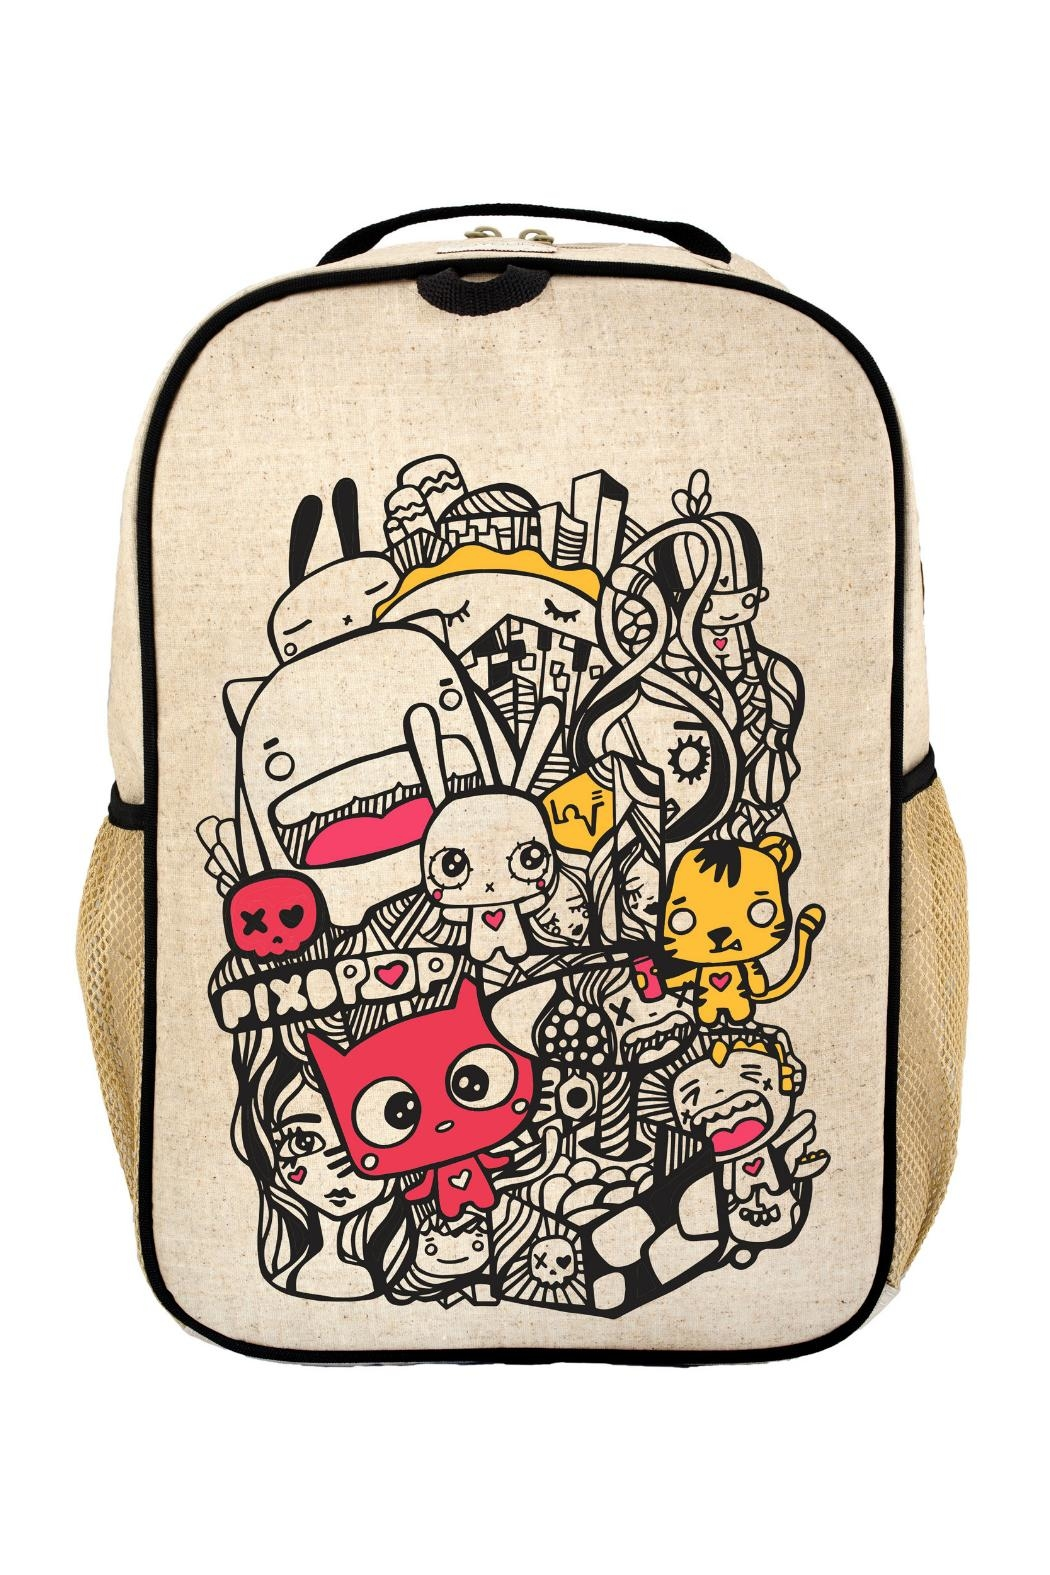 SOYOUNG Backpack: Pishi Friends - Main Image